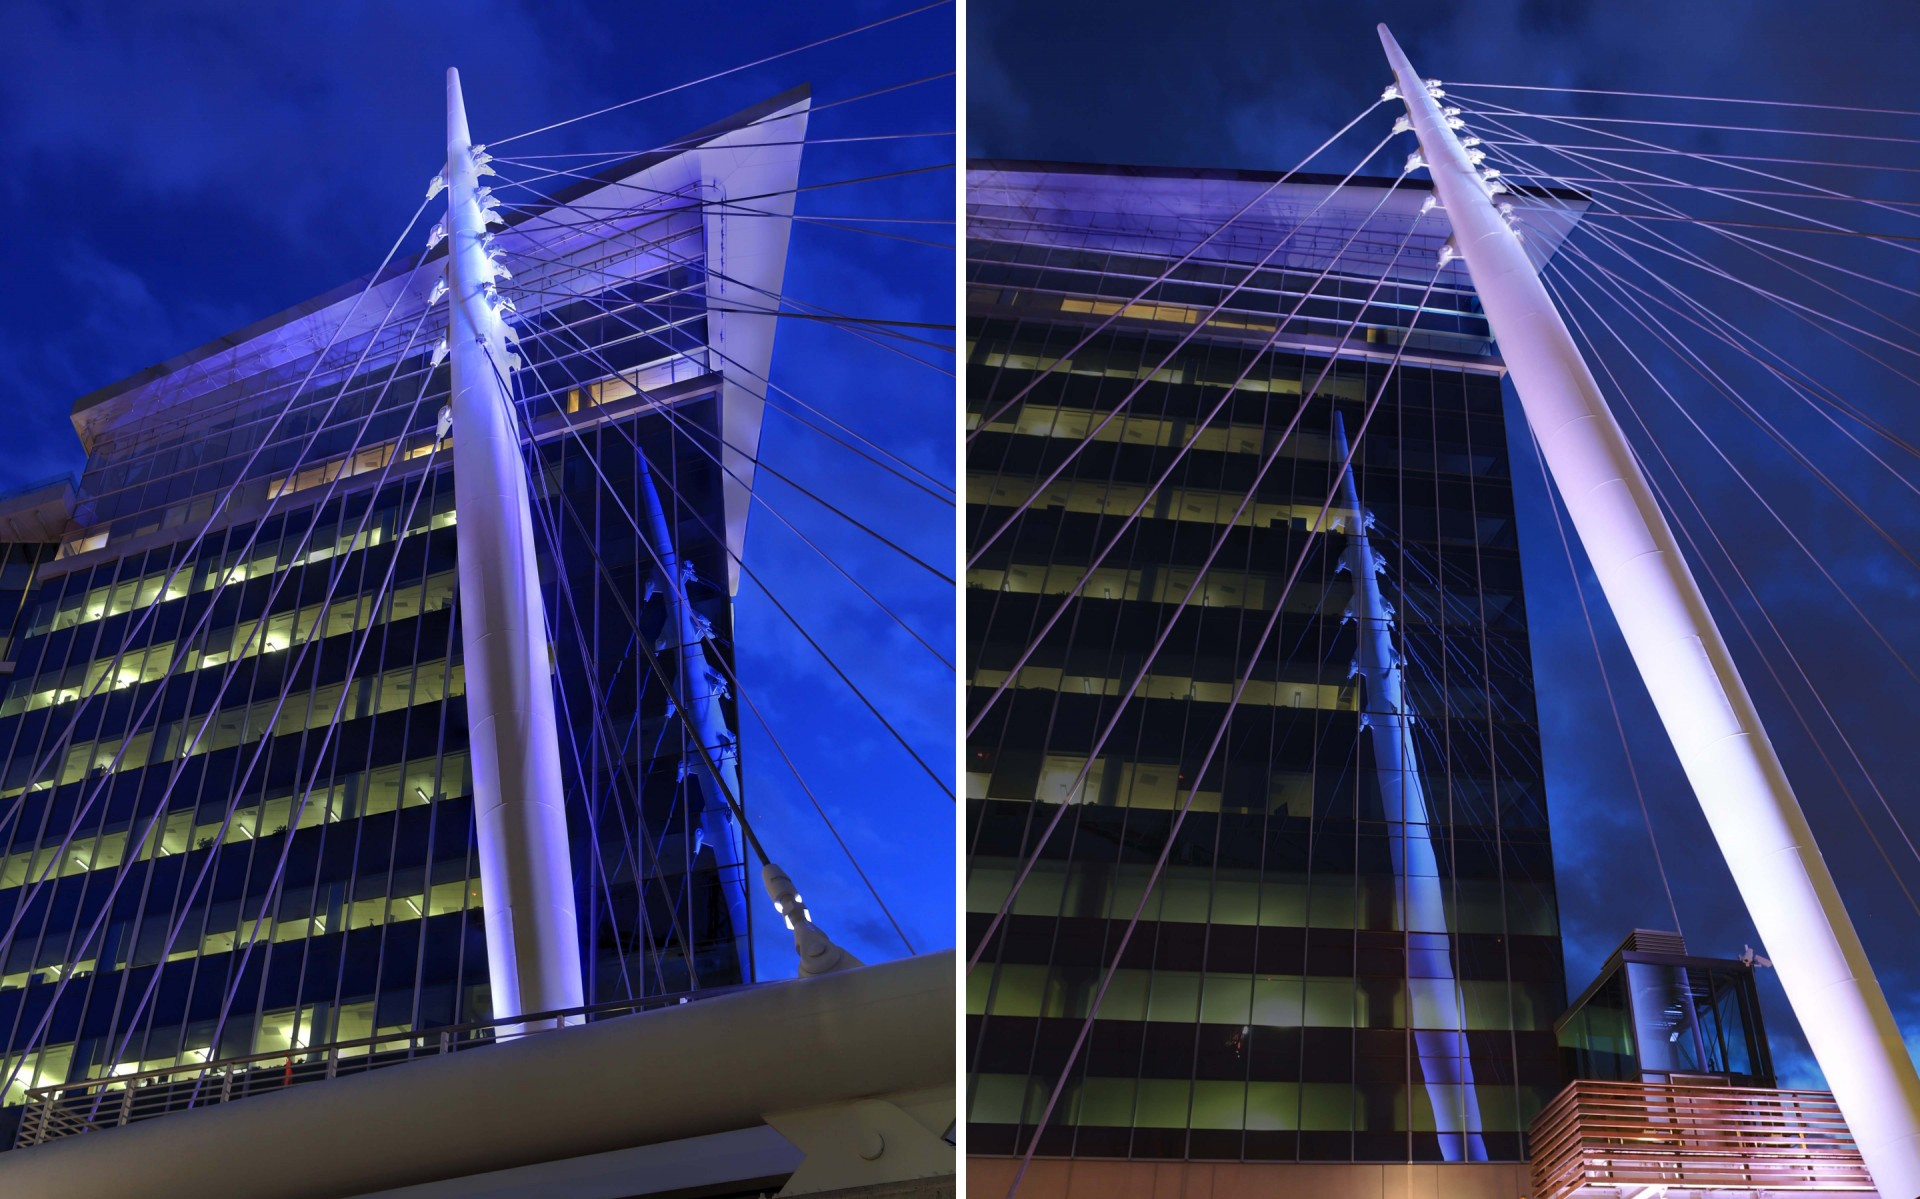 The luminaires' color-changing capabilities allow the bridge's iconic spire to be illuminated for holidays and special occasions.  – Ryan Linton